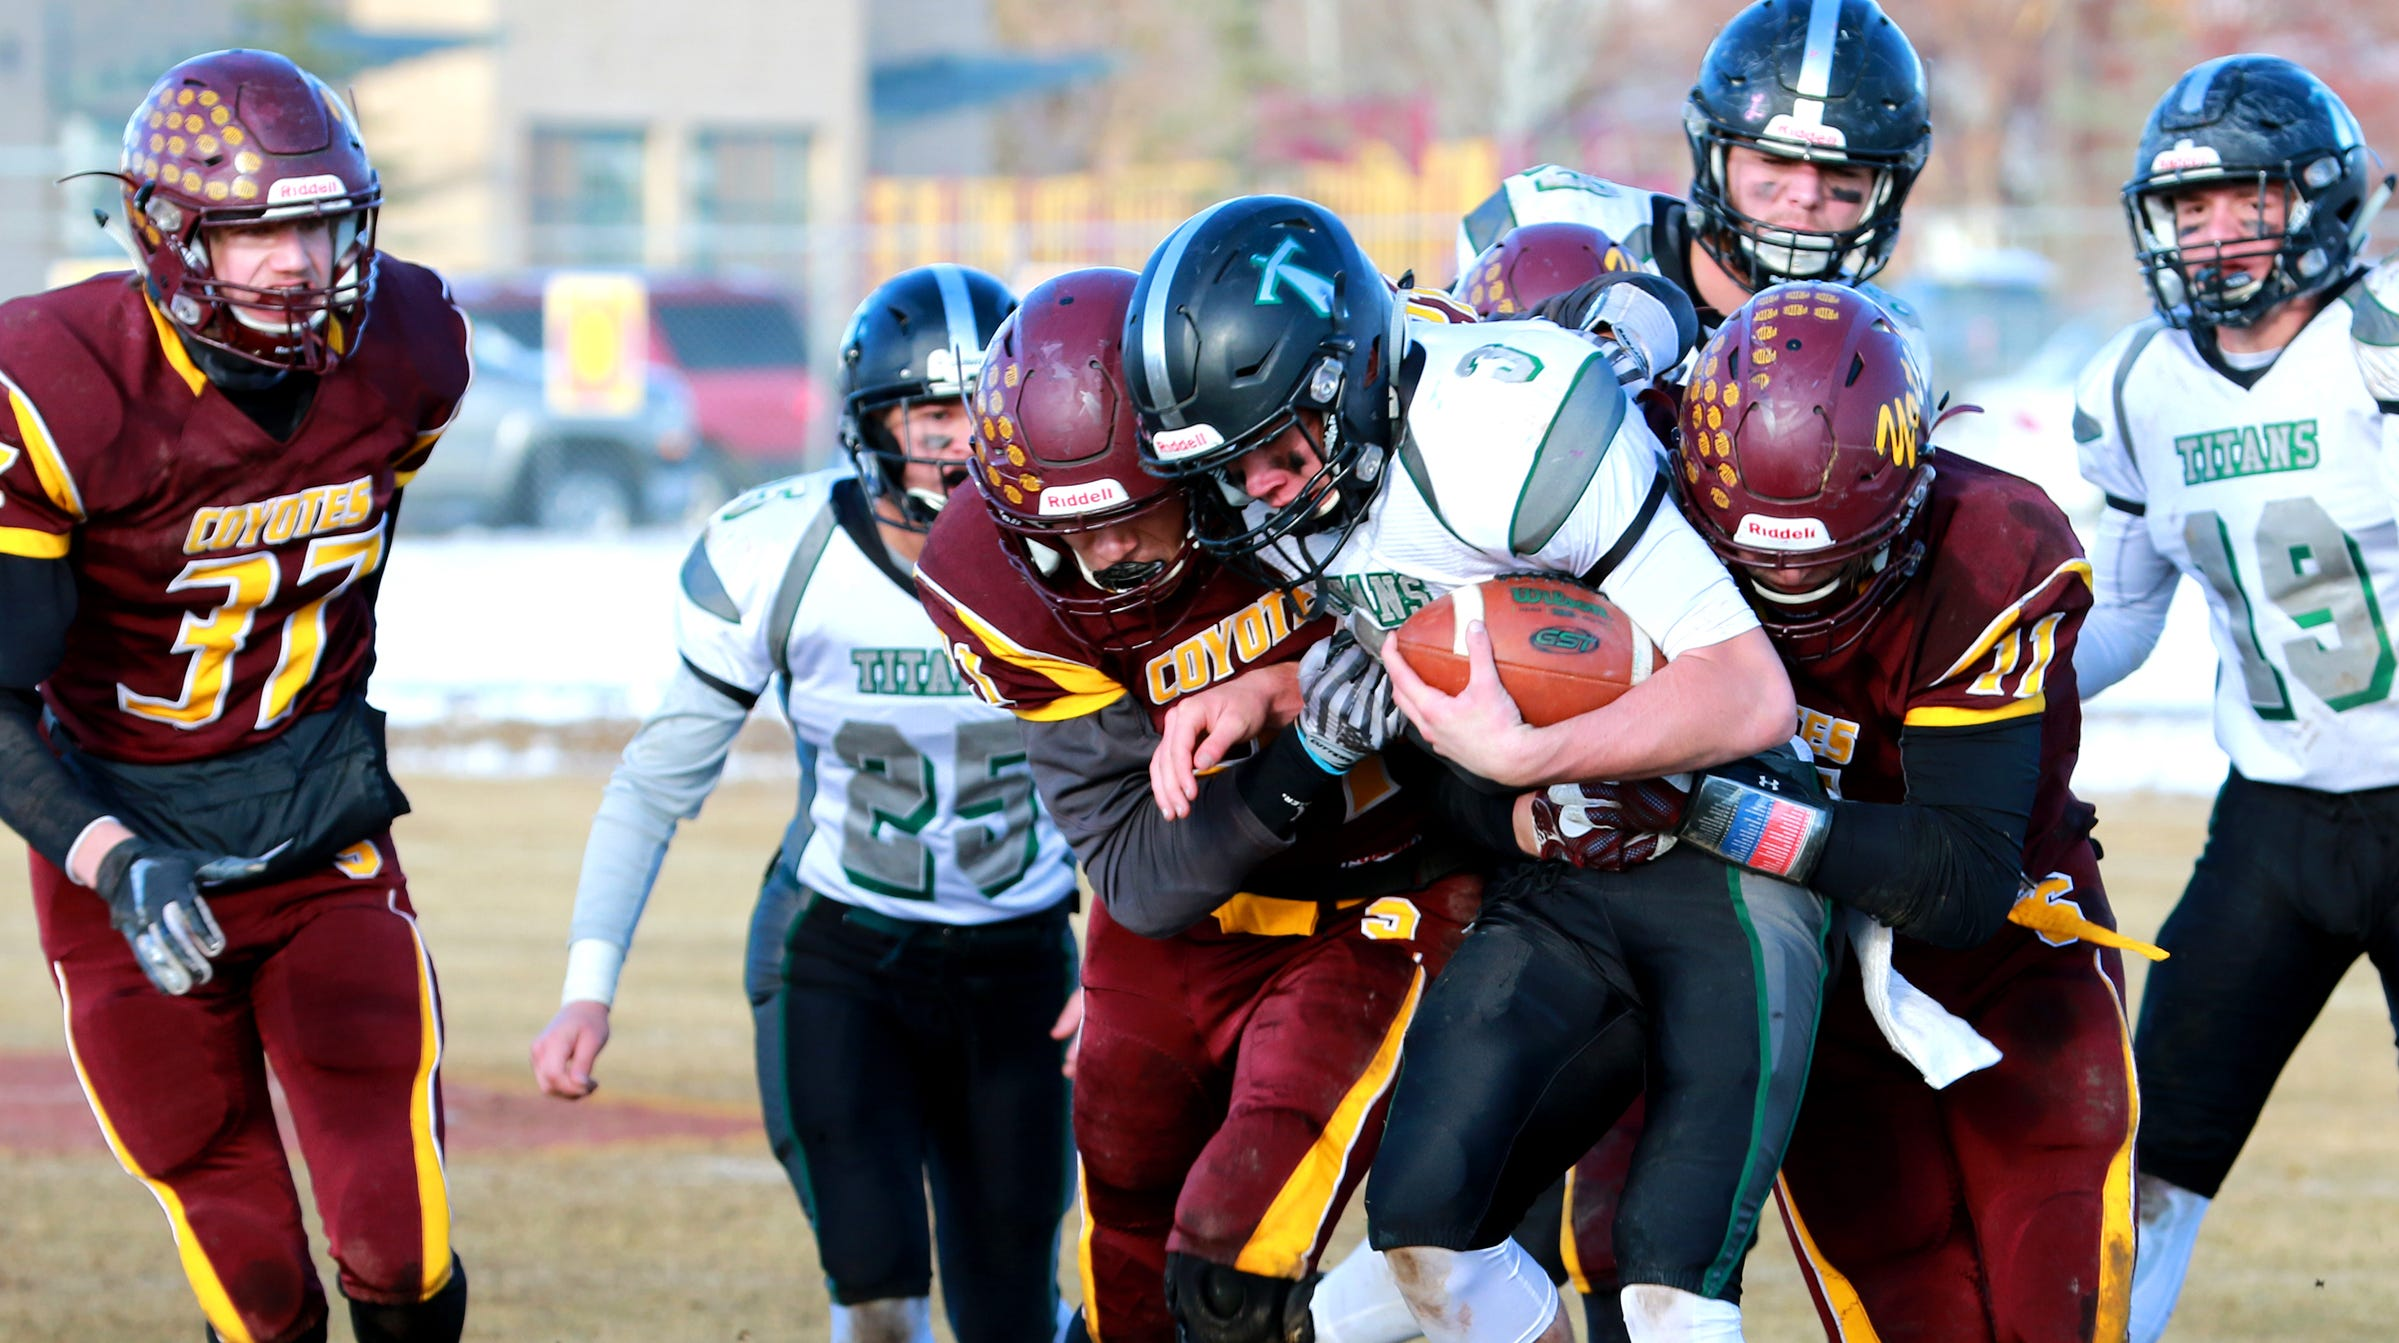 A look back at last weekend's high school football semifials and look ahead to next weekend's championship games